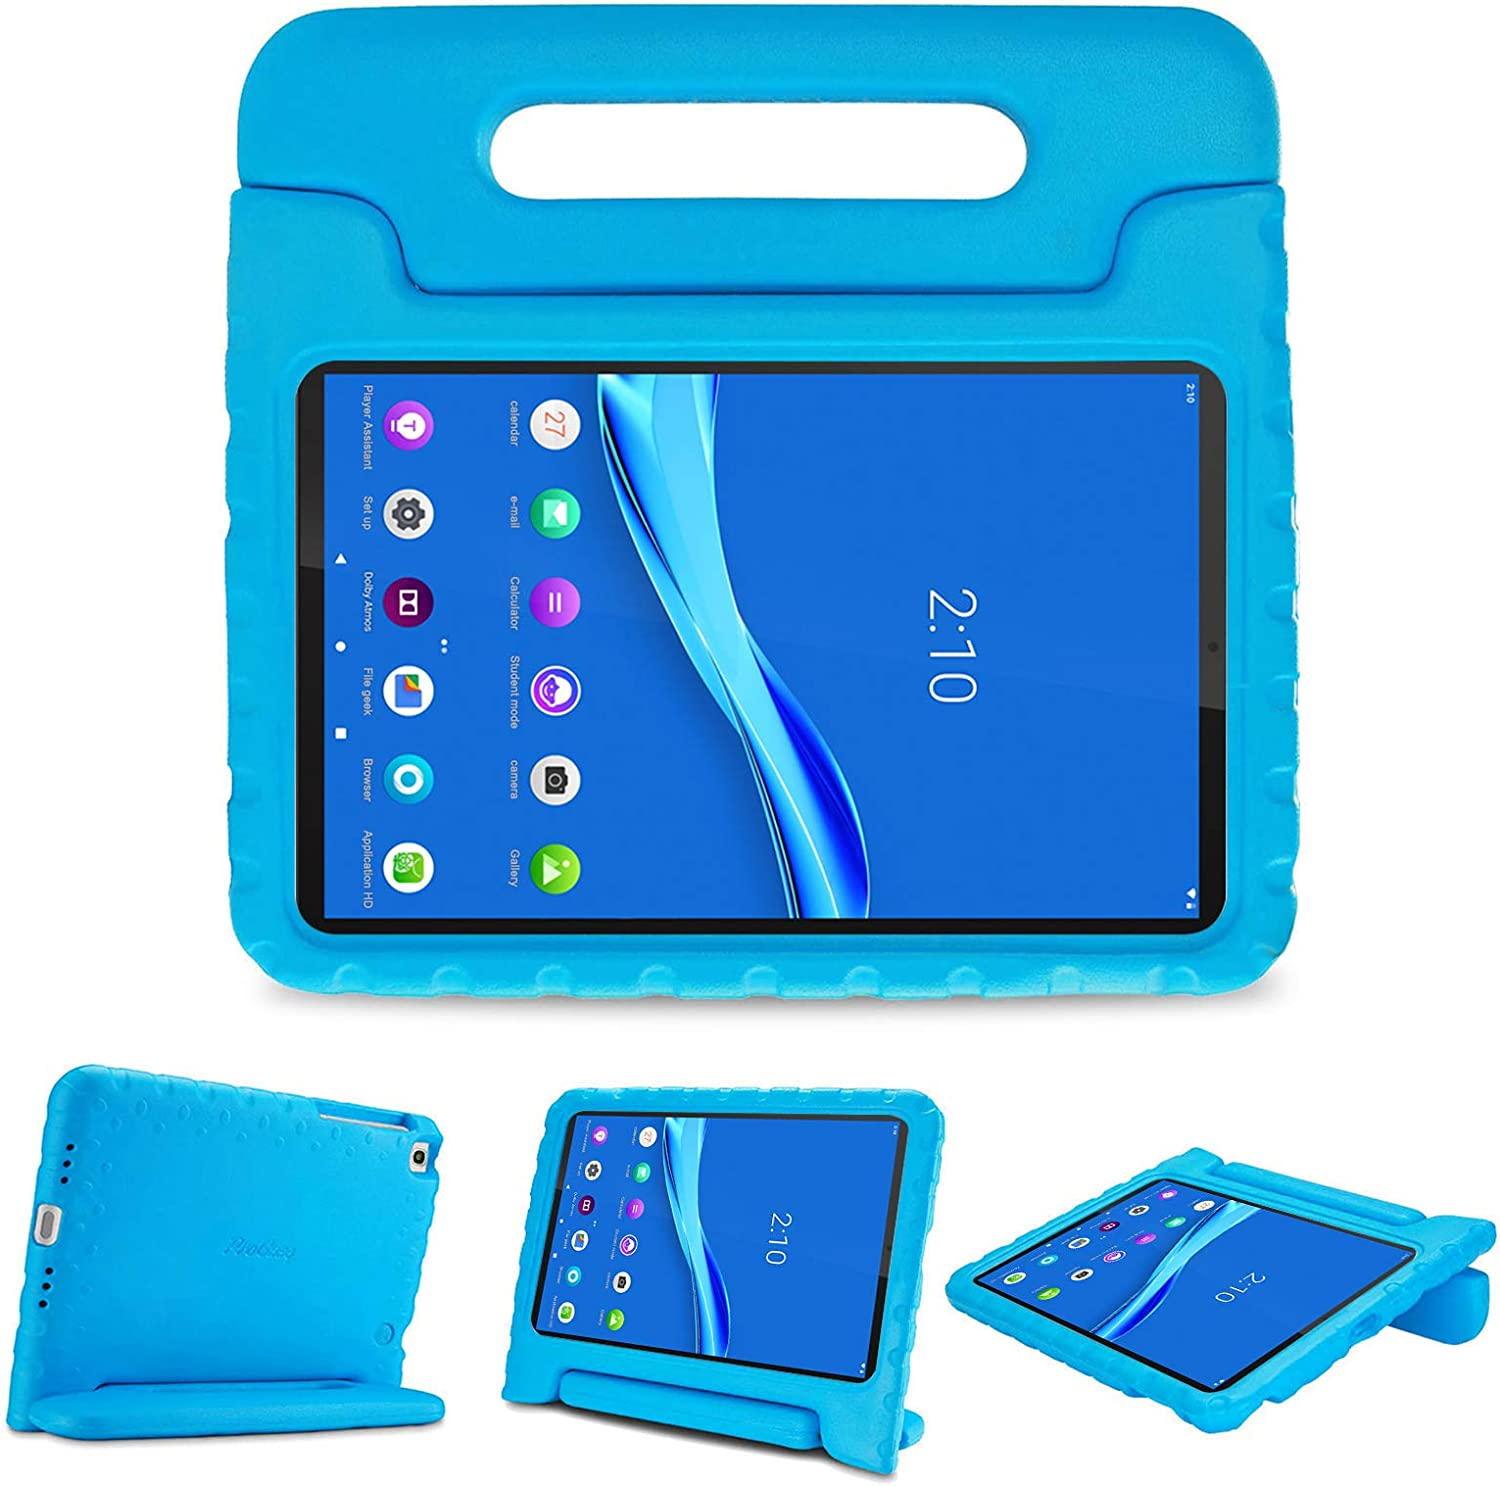 ProCase Kids Case for Lenovo Tab M10 FHD Plus 10.3 Inch (2020 2nd Gen), Shockproof Convertible Handle Stand Cover, Lightweight Kids Friendly Case for Lenovo Tab M10 Plus TB-X606F TB-X606X –Blue